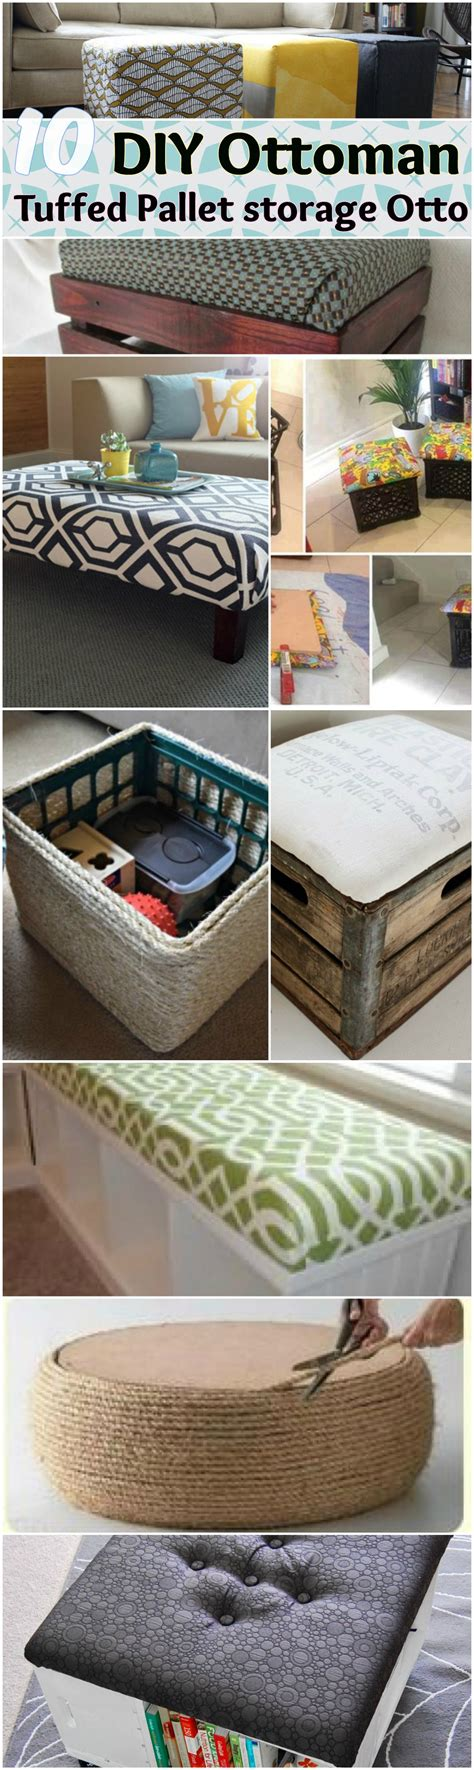 ottoman ideas diy storage ottoman ideas from recycle crates and pallets